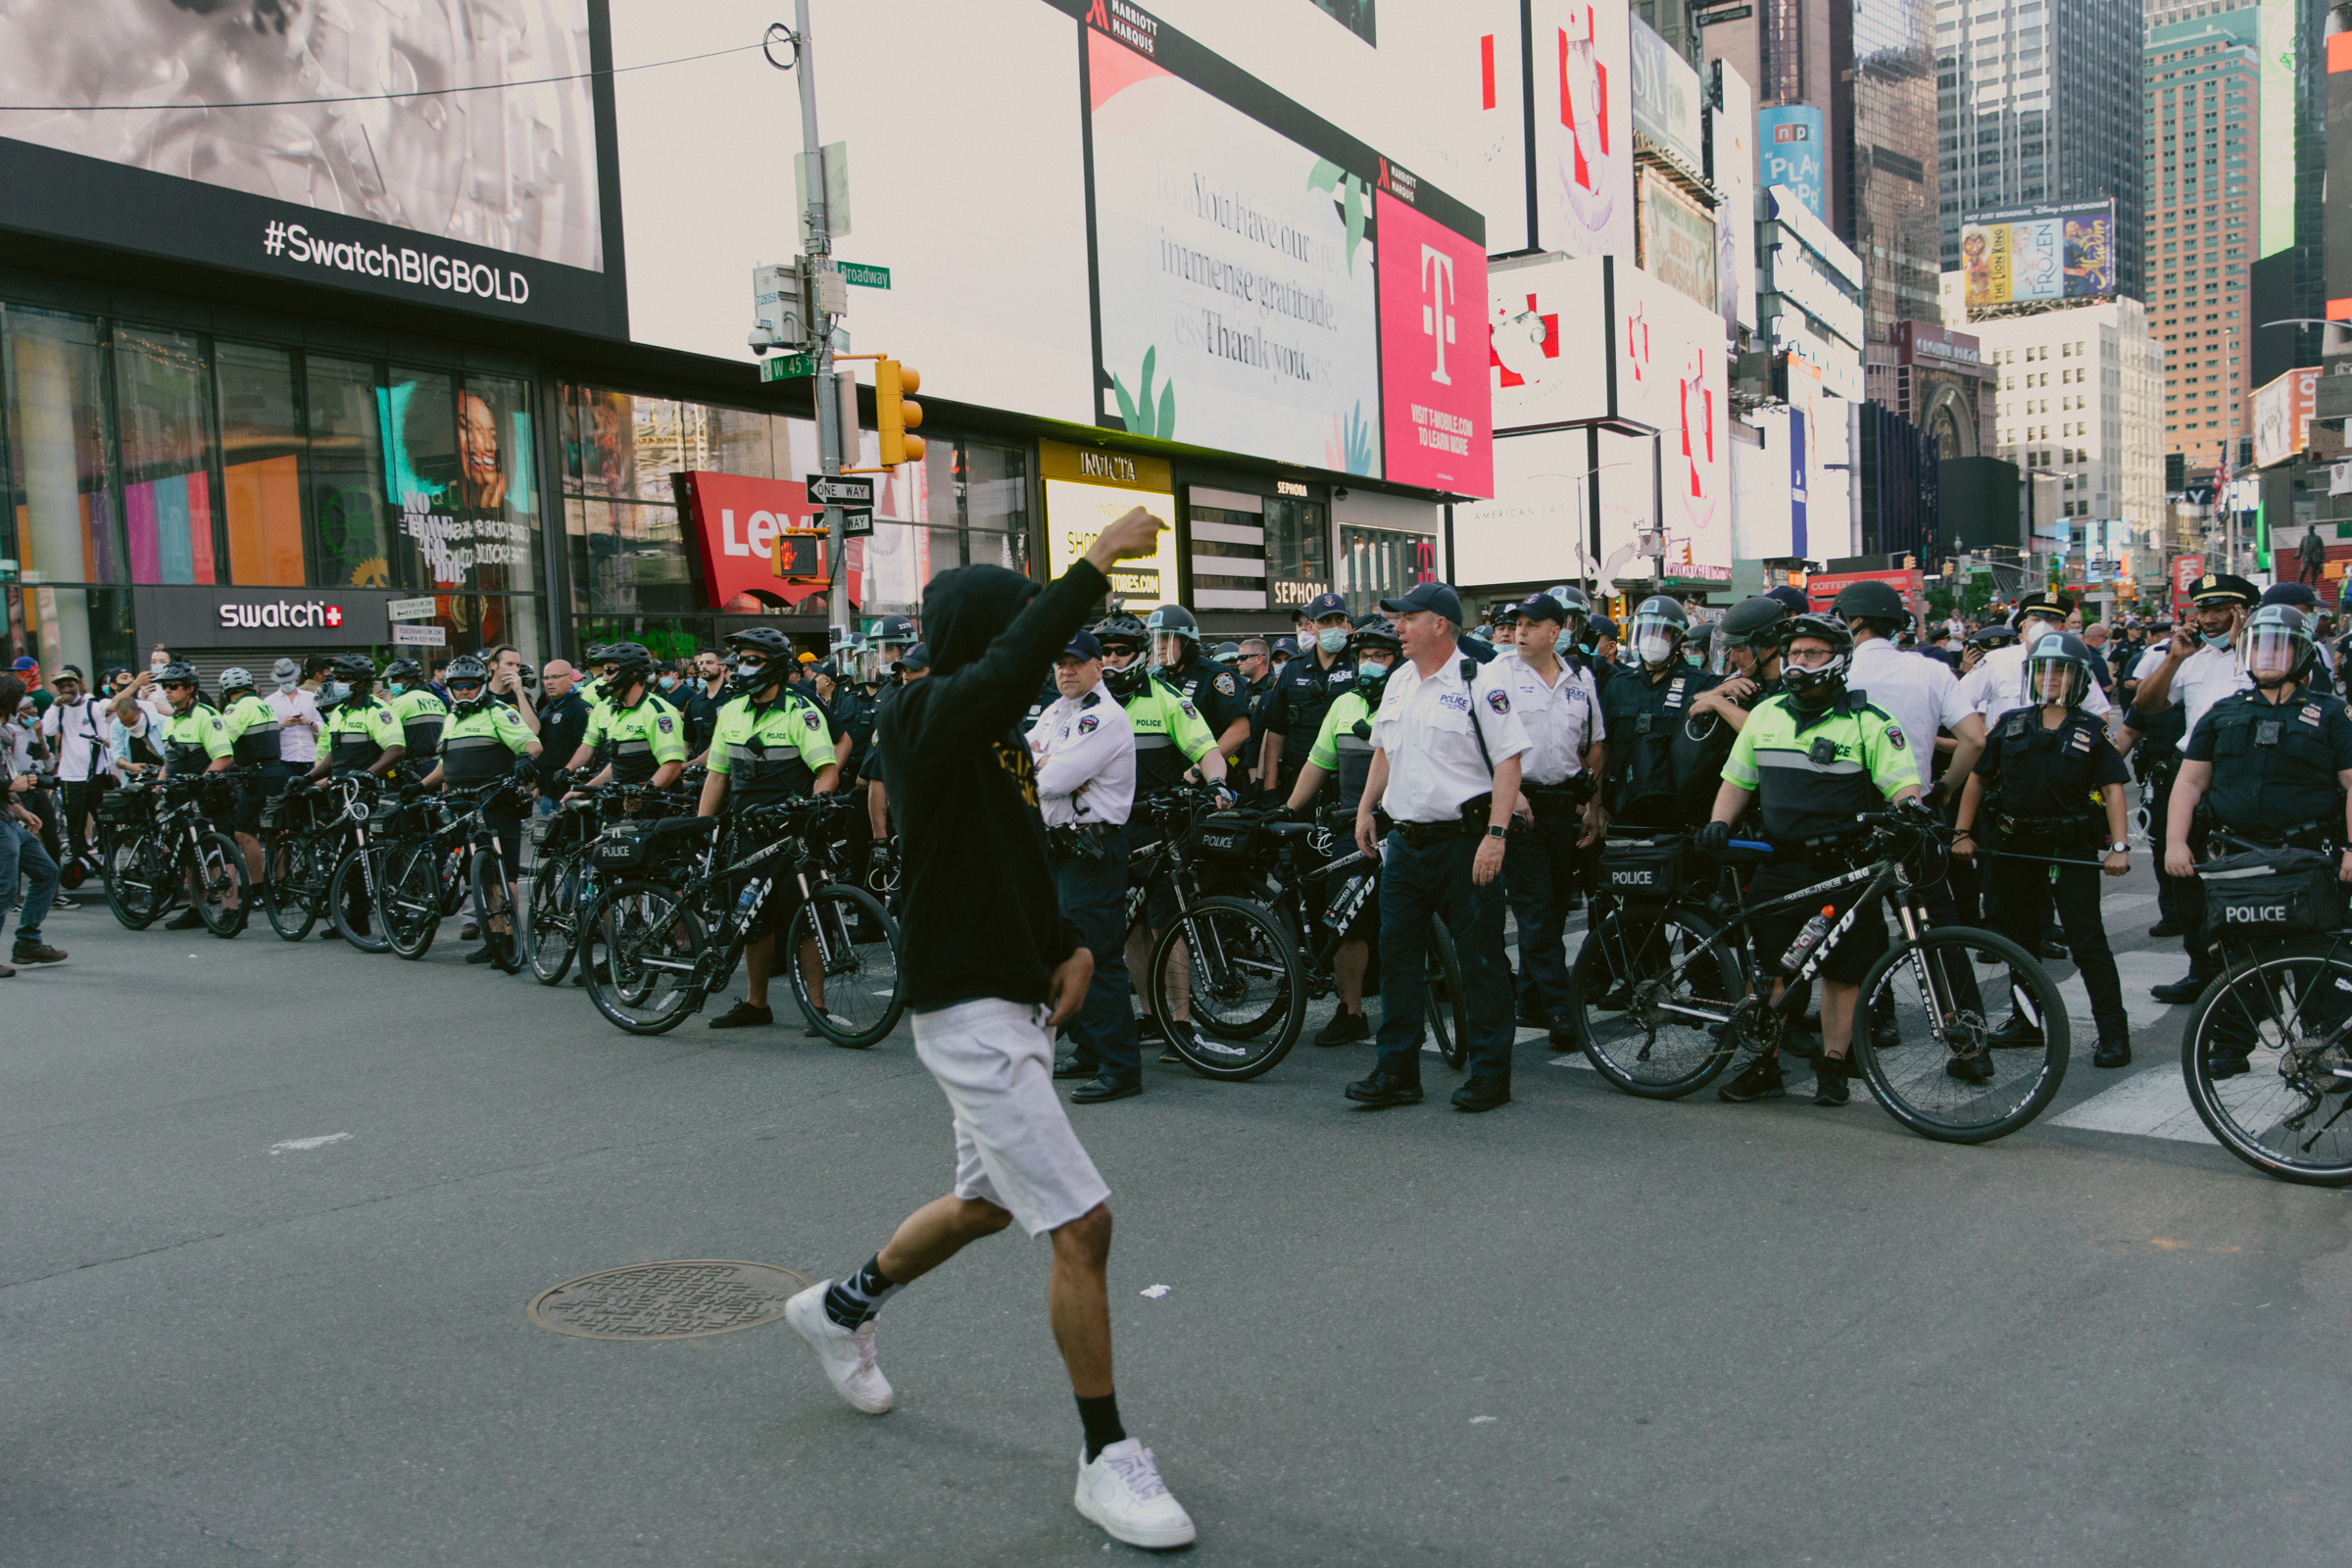 A protester walks by officers in Times Square on May 30.